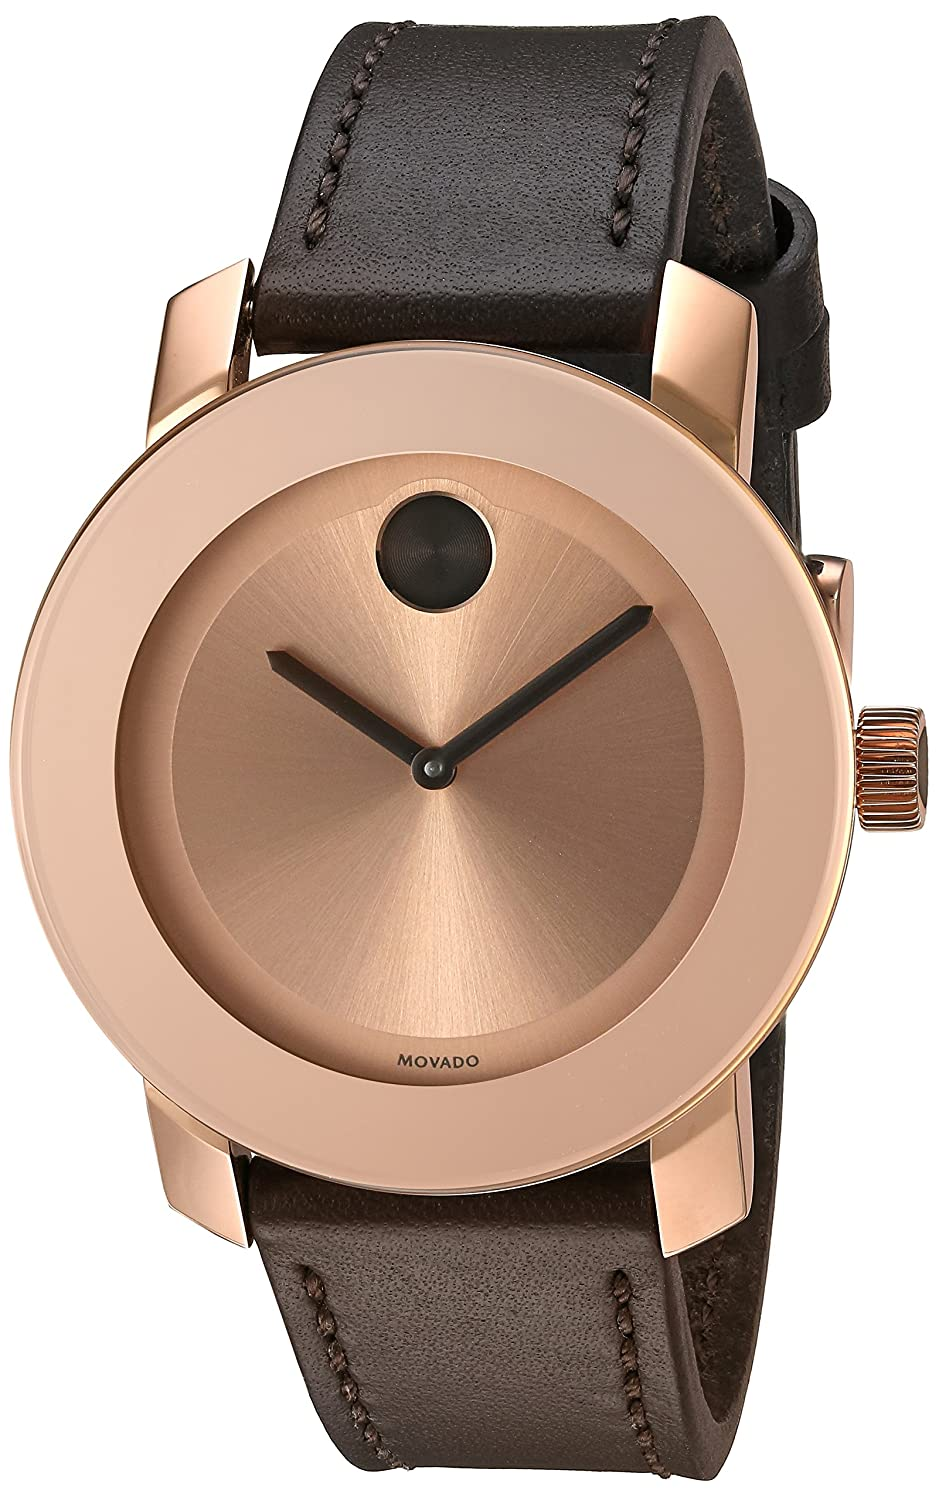 Movado Women s Swiss Quartz Gold-Tone and Leather Watch, Color Brown Model 3600380